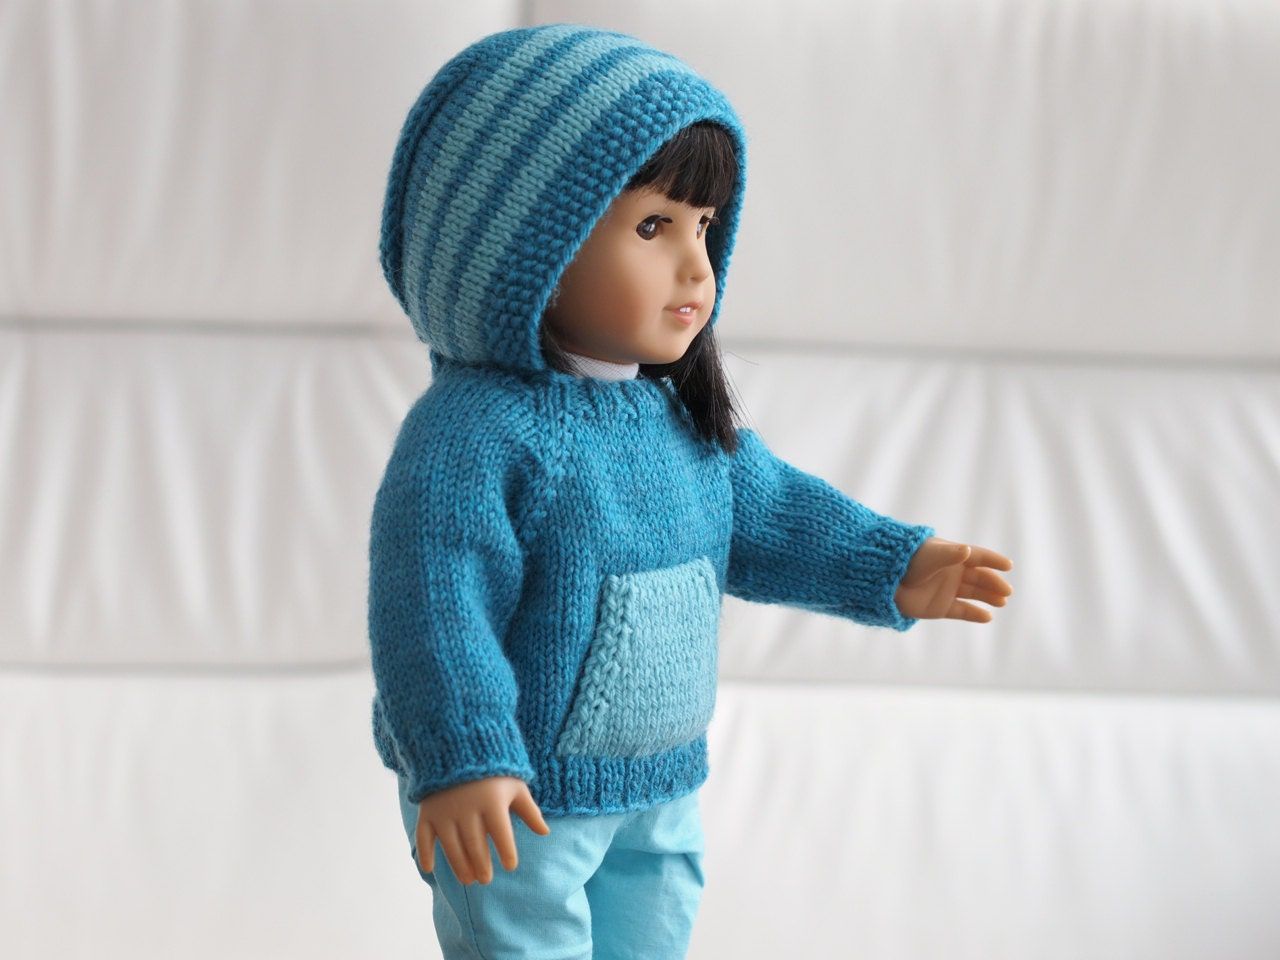 Kangaroo Hoodie Knitting Pattern : Kangaroo Campfire Hoodie Knitting Pattern for 18 Inch Dolls